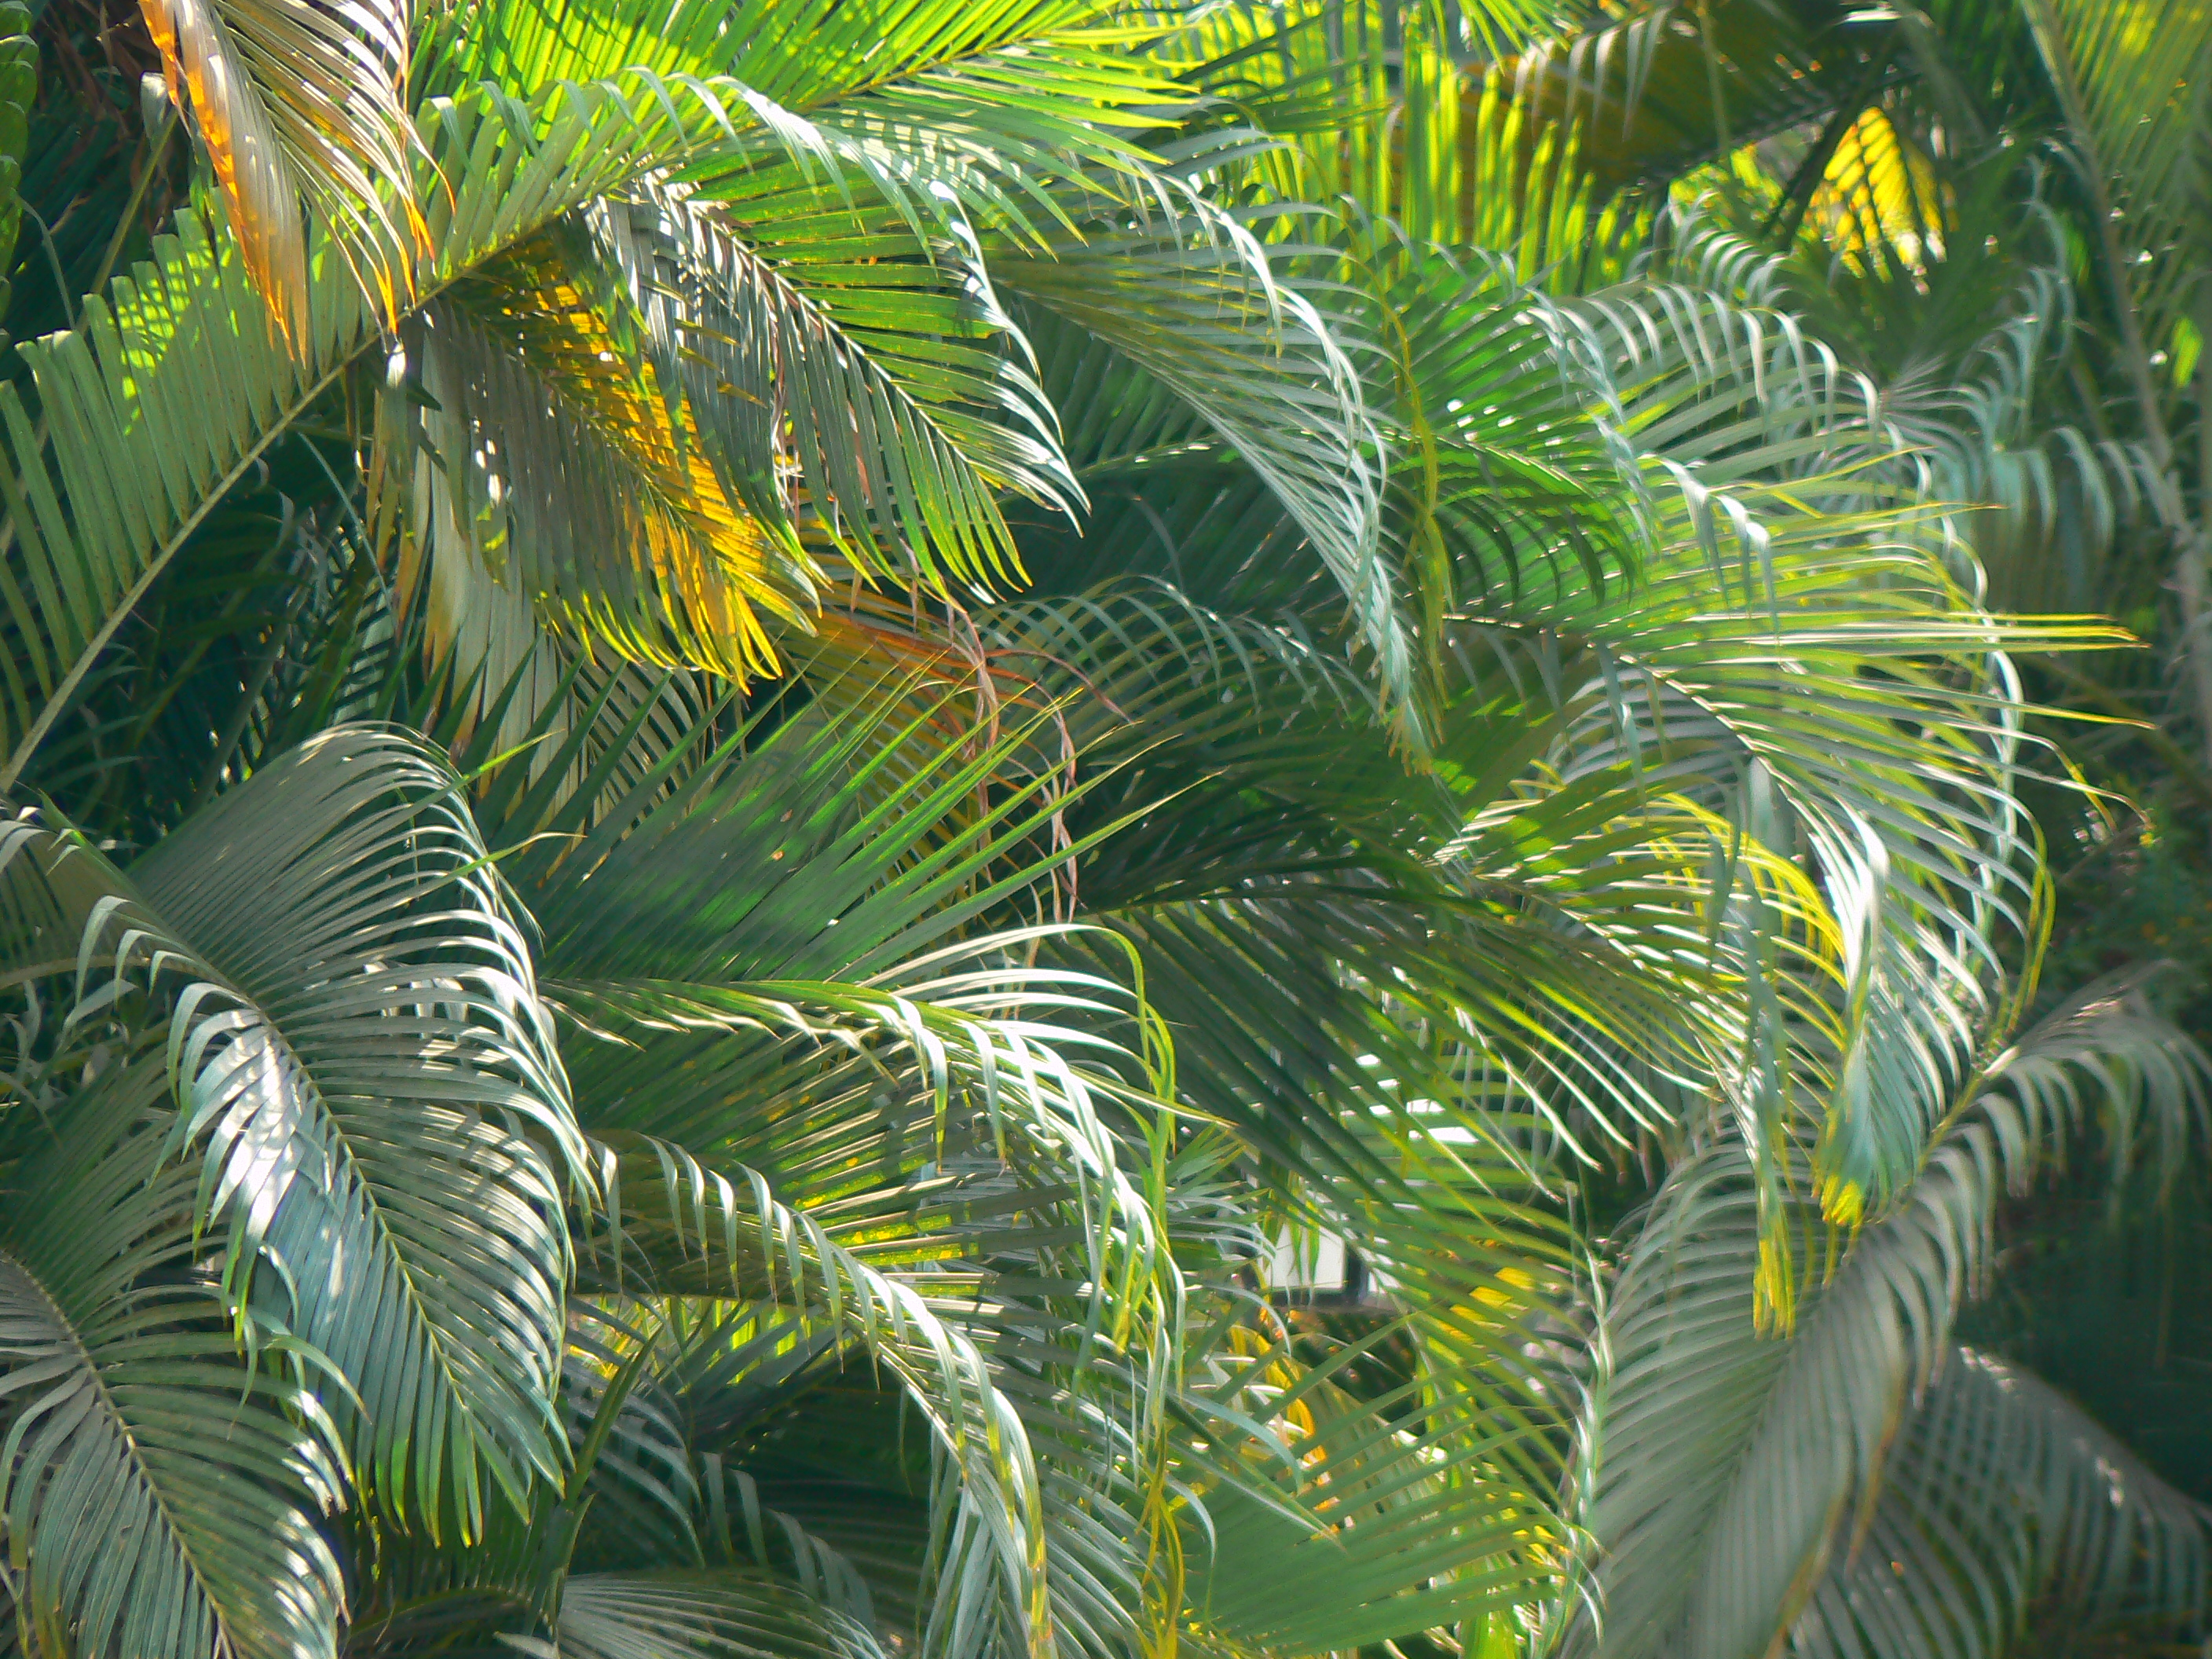 Dypsis Lutescens Wikipedia File Butterfly Palm 433835493 Jpg Wikimedia Commons